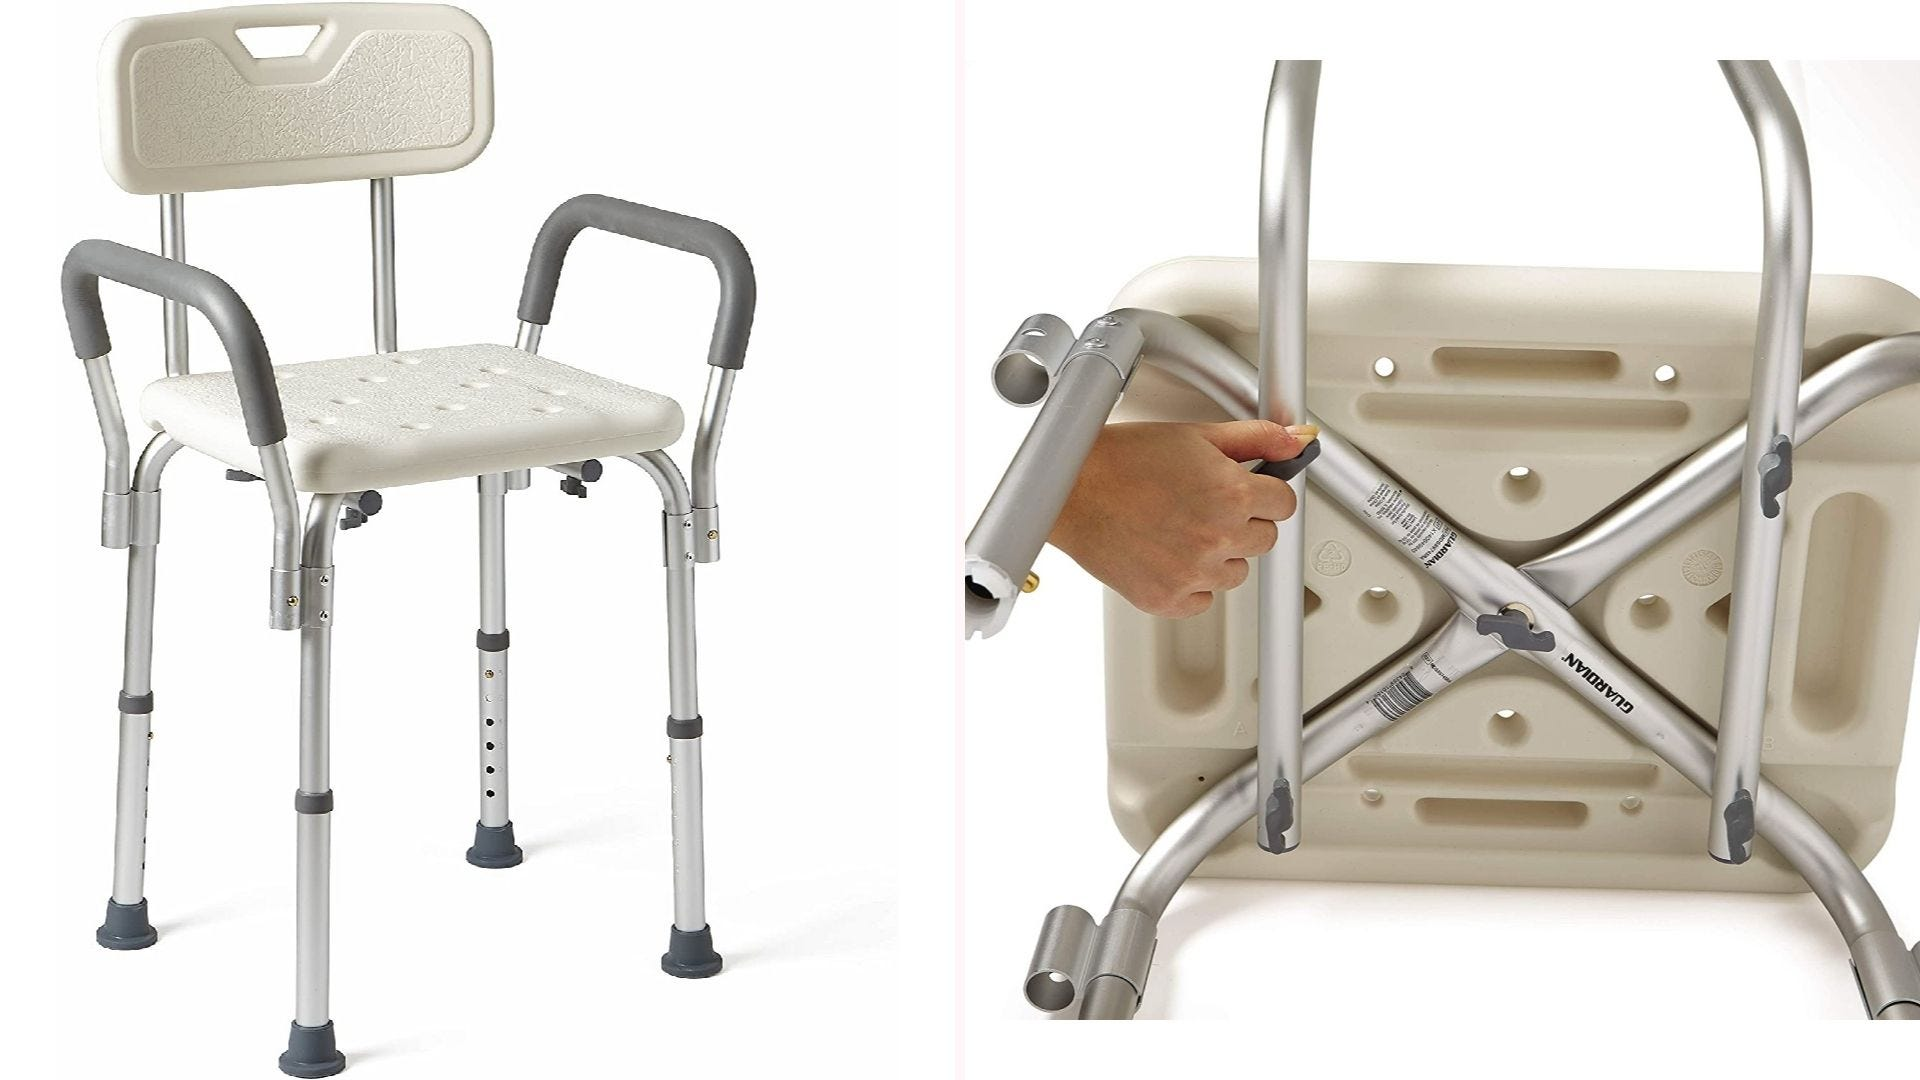 On the left, a white and gray 16.5-inch tall shower seat that features padded arms and a full back. On the right, a closeup view of the chair's underside reveals the legs' cross-cutting design.